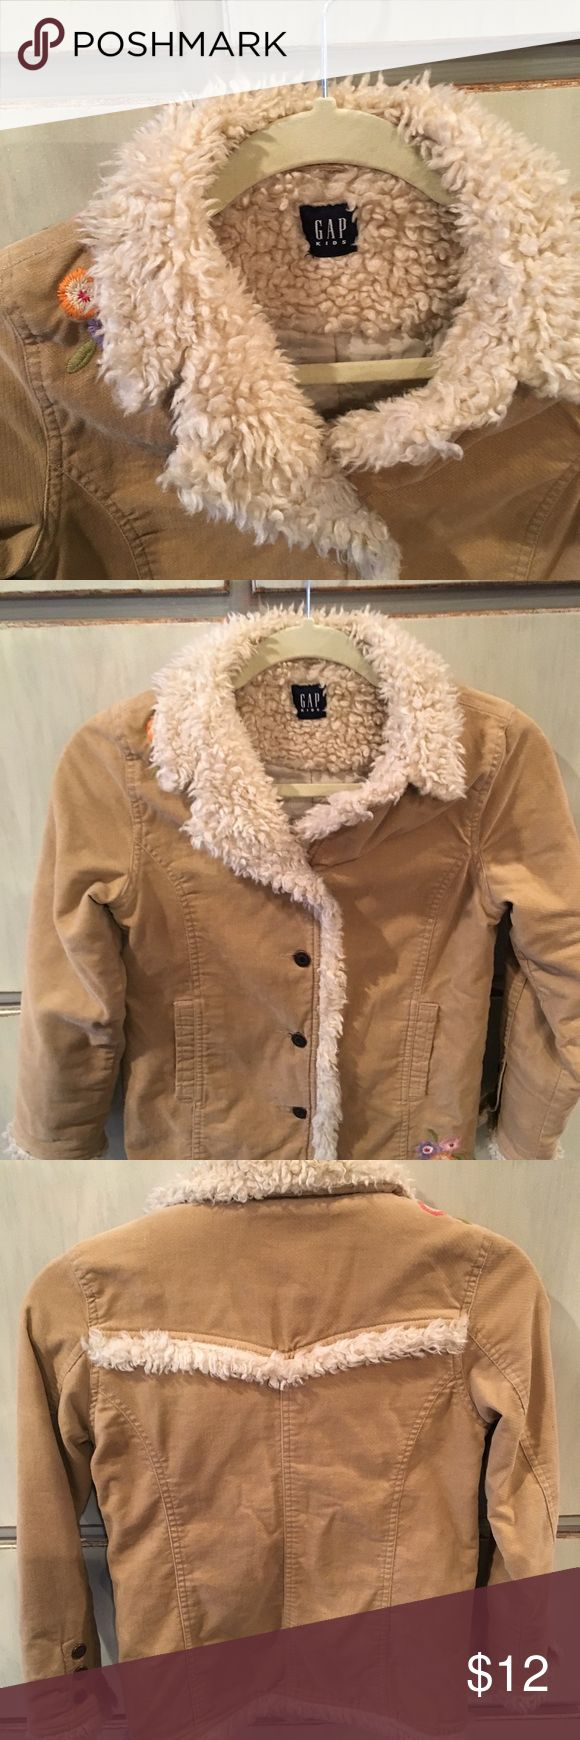 GAP coat Adorable girls GAP coat.  Cute flower stitching and soft fur-like edging.  Gently used...EXCELLENT condition!  Size 6-8. GAP Jackets & Coats